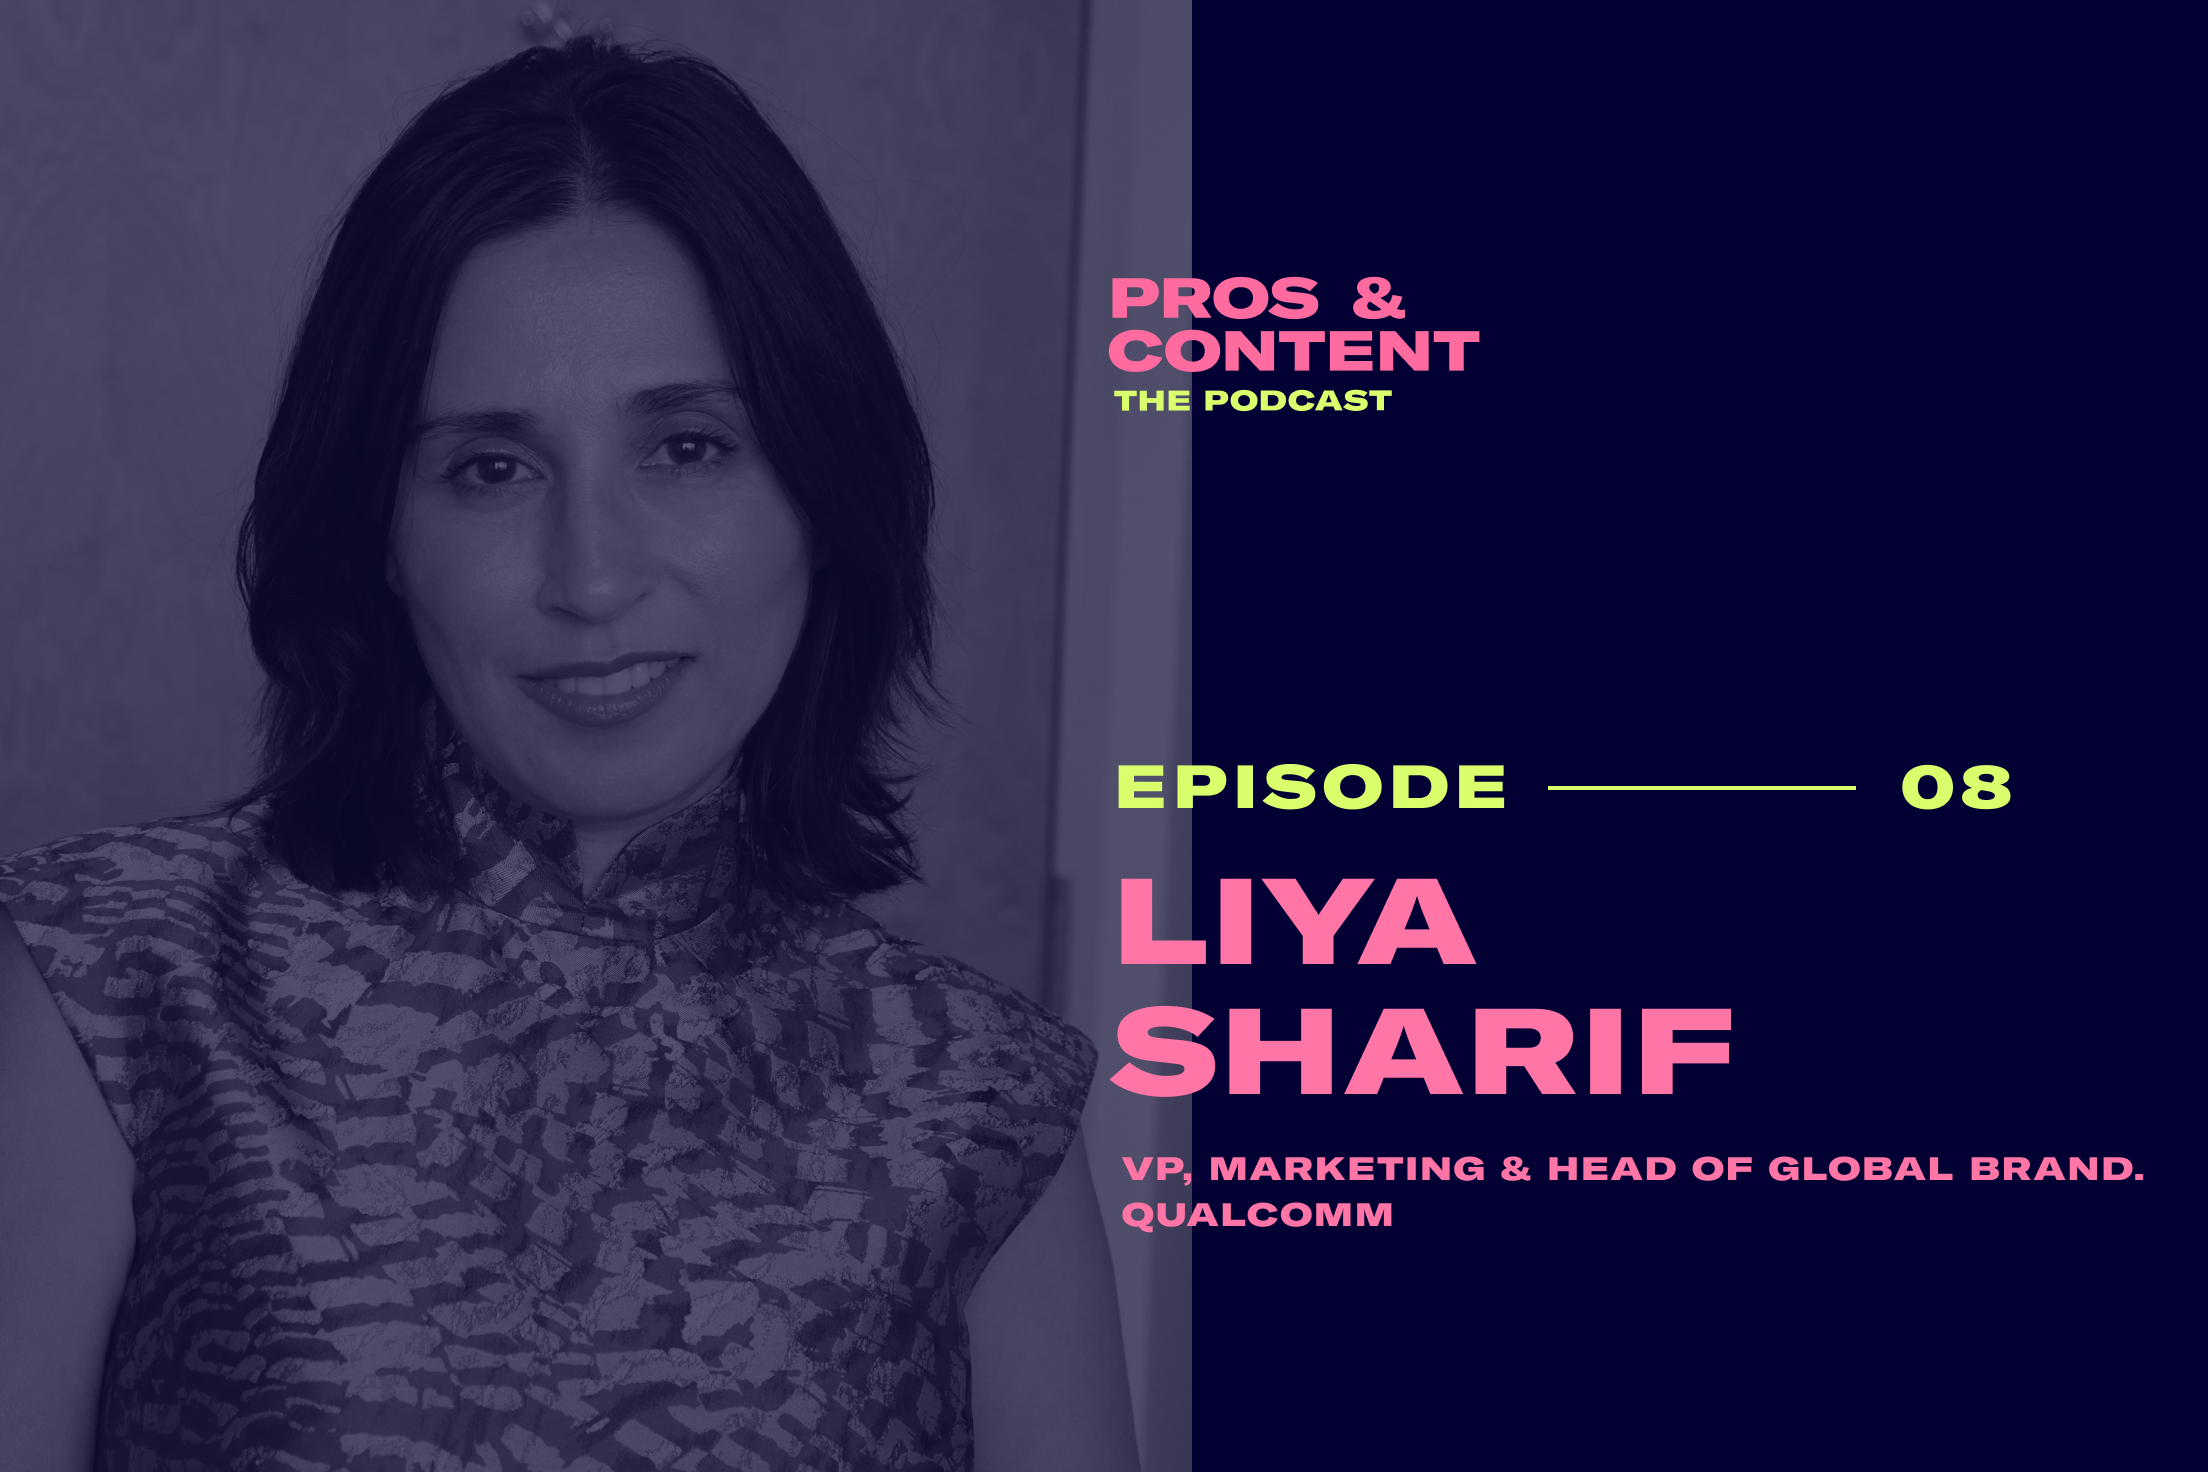 Pros & Content Podcast: Liya Sharif (VP, Marketing & Head of Brand at Qualcomm)